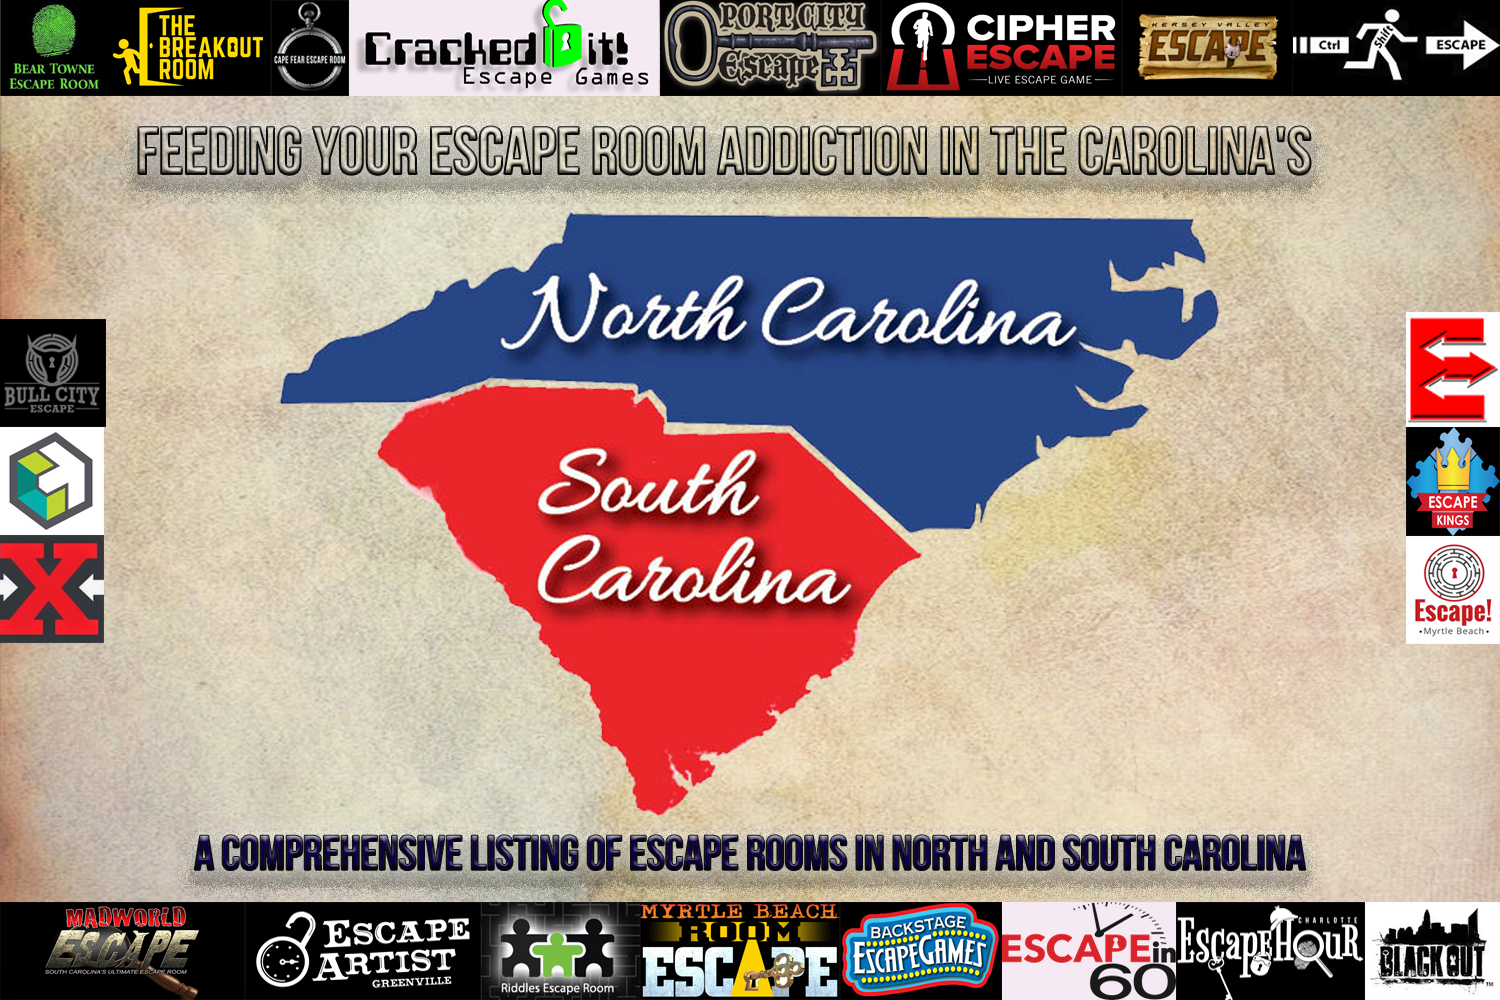 Header image of North and South Carolina escape room logos over the states of NC and SC